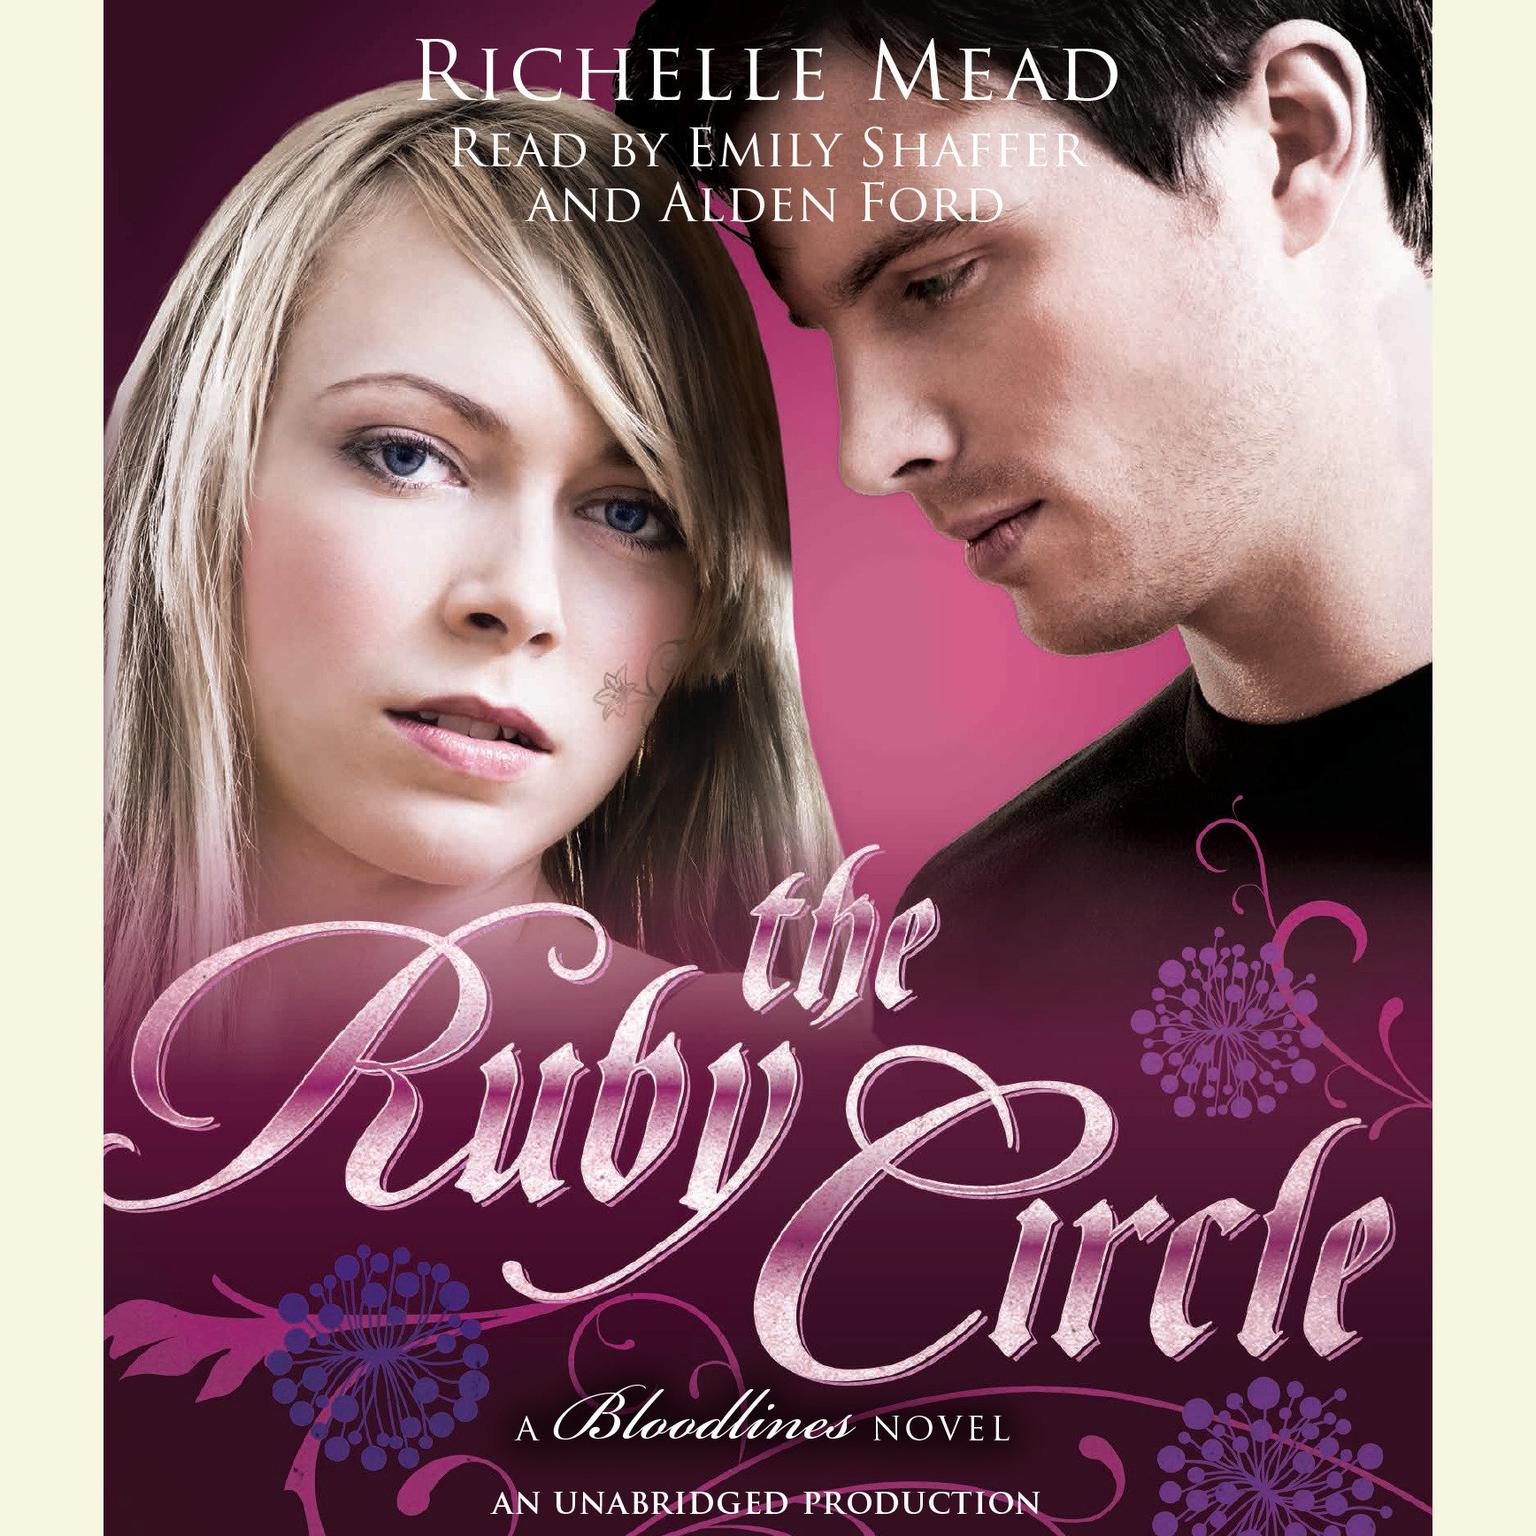 Printable The Ruby Circle: A Bloodlines Novel Audiobook Cover Art